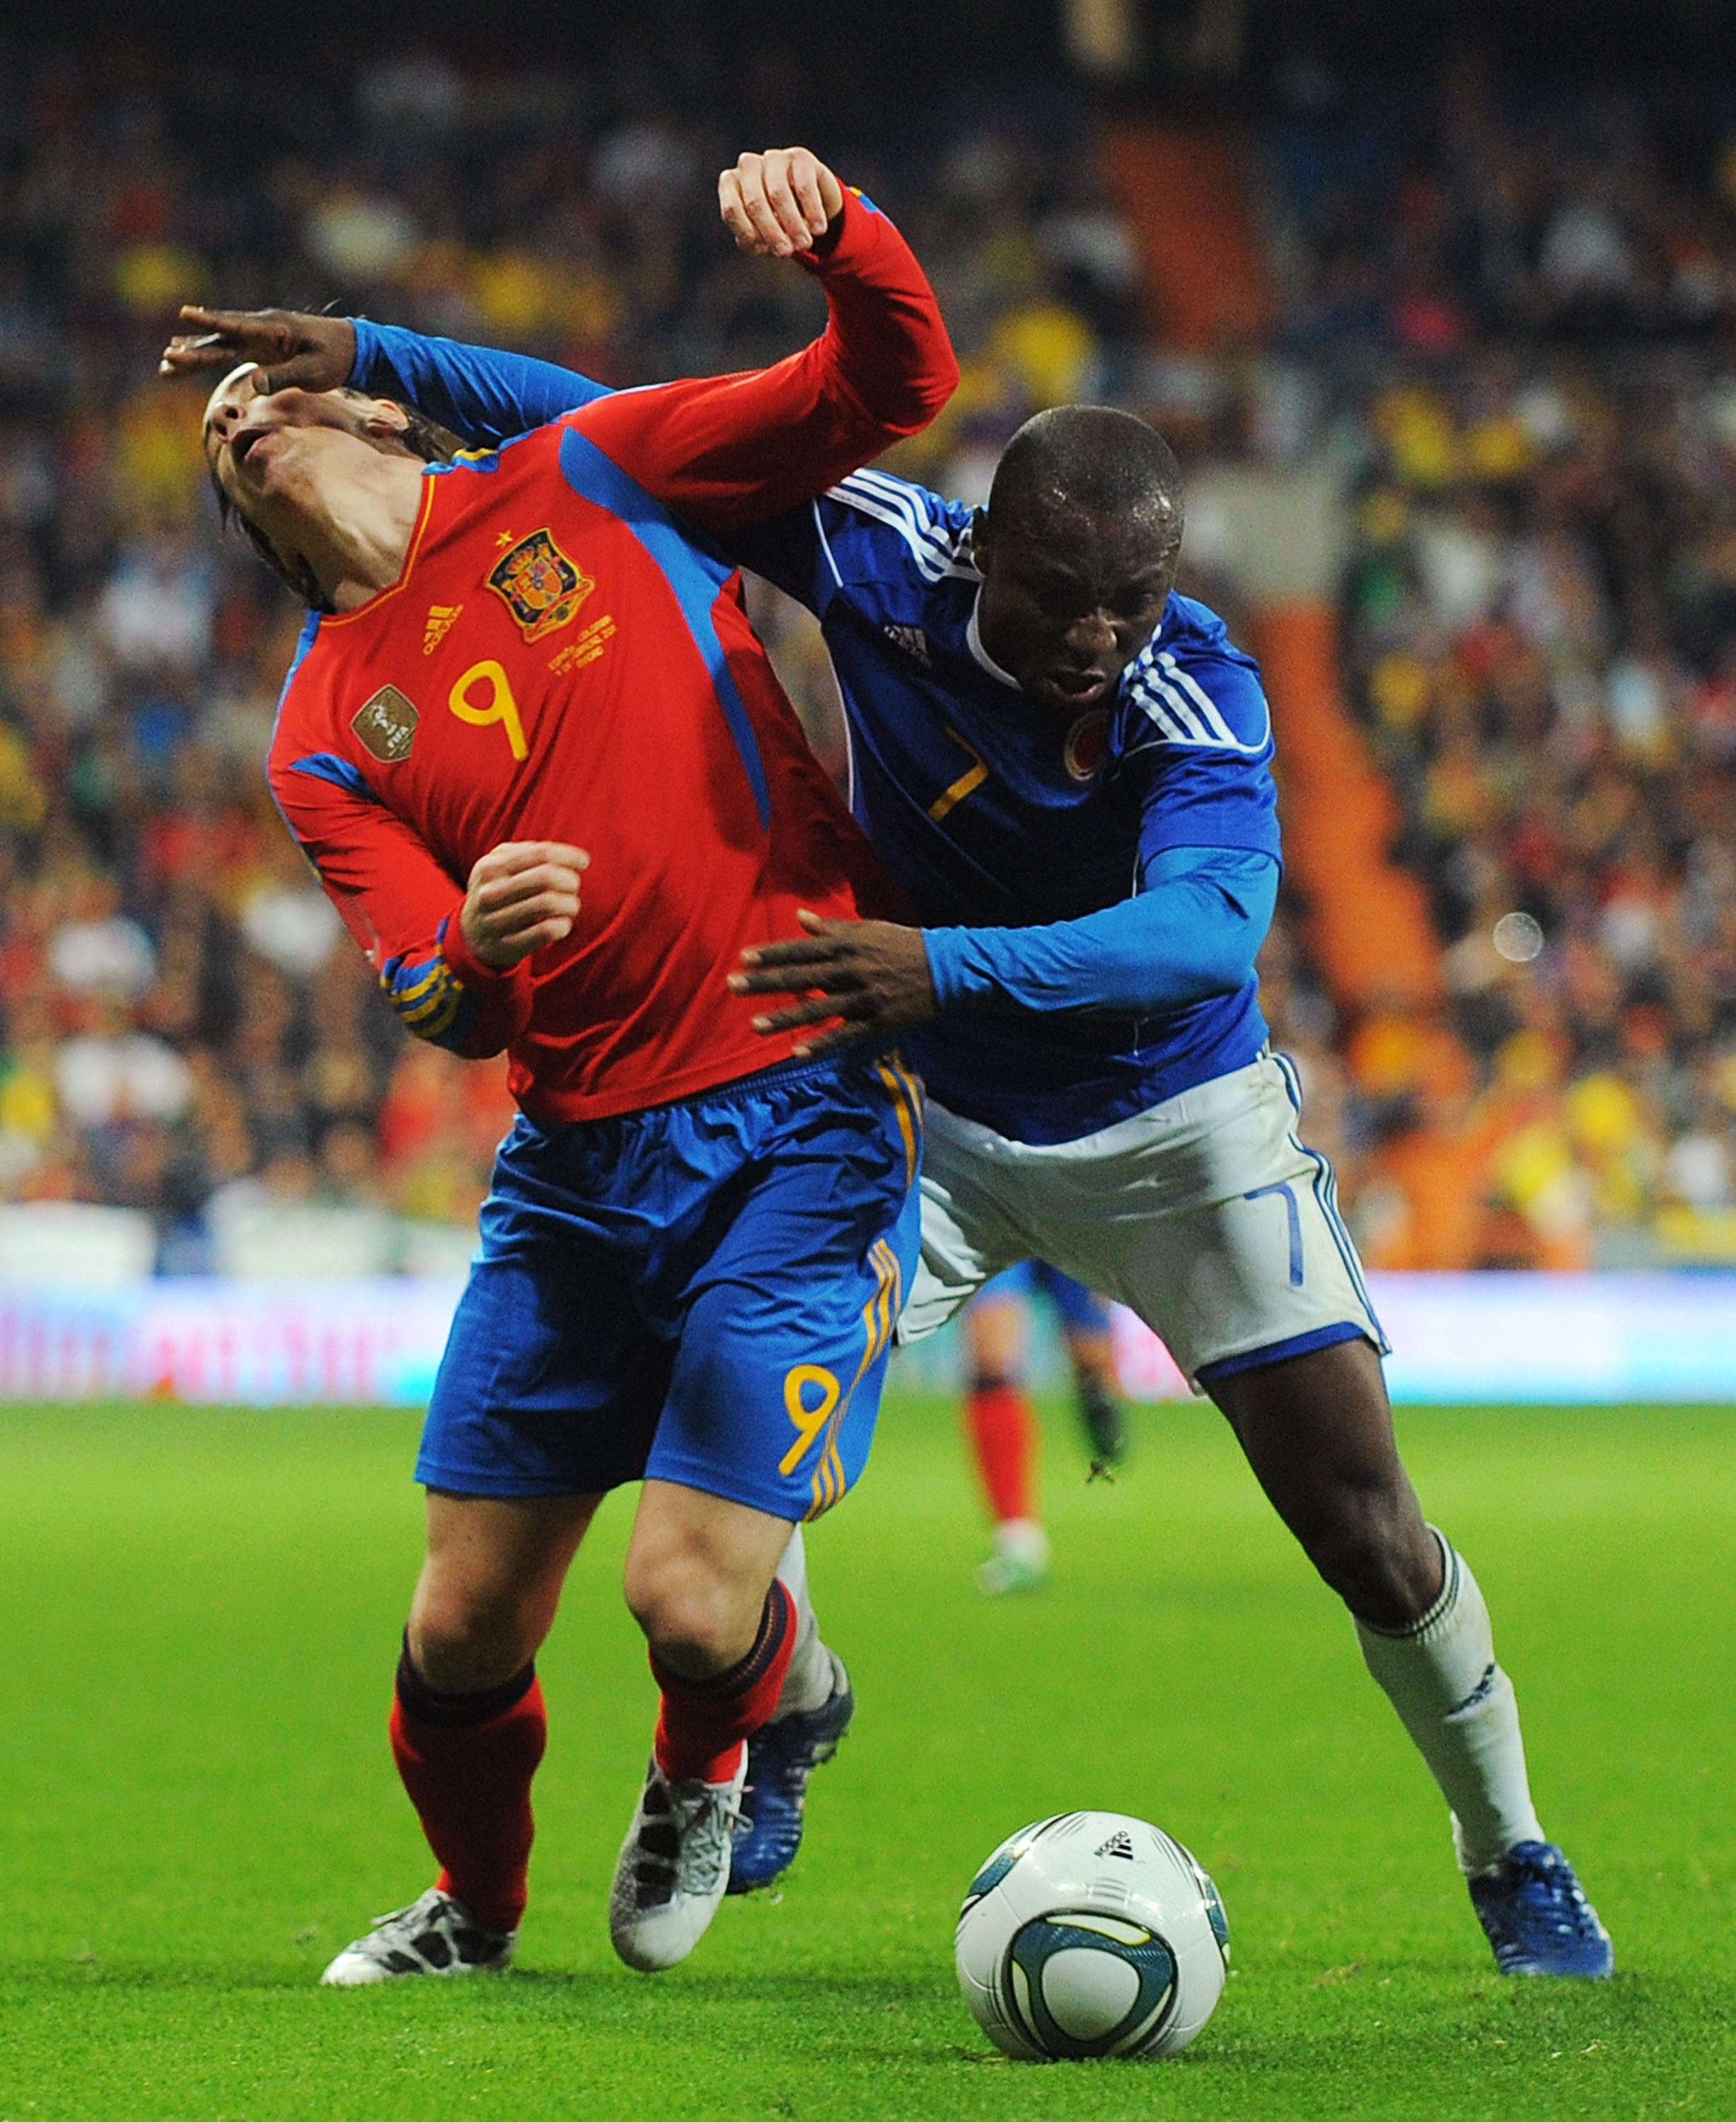 MADRID, SPAIN - FEBRUARY 09:  Fernando Torres (L)  of Spain is fouled by Armero of Colombia during the International friendly match between Spain and Colombia at Estadio Santiago Bernabeu on February 9, 2011 in Madrid, Spain.  (Photo by Denis Doyle/Getty